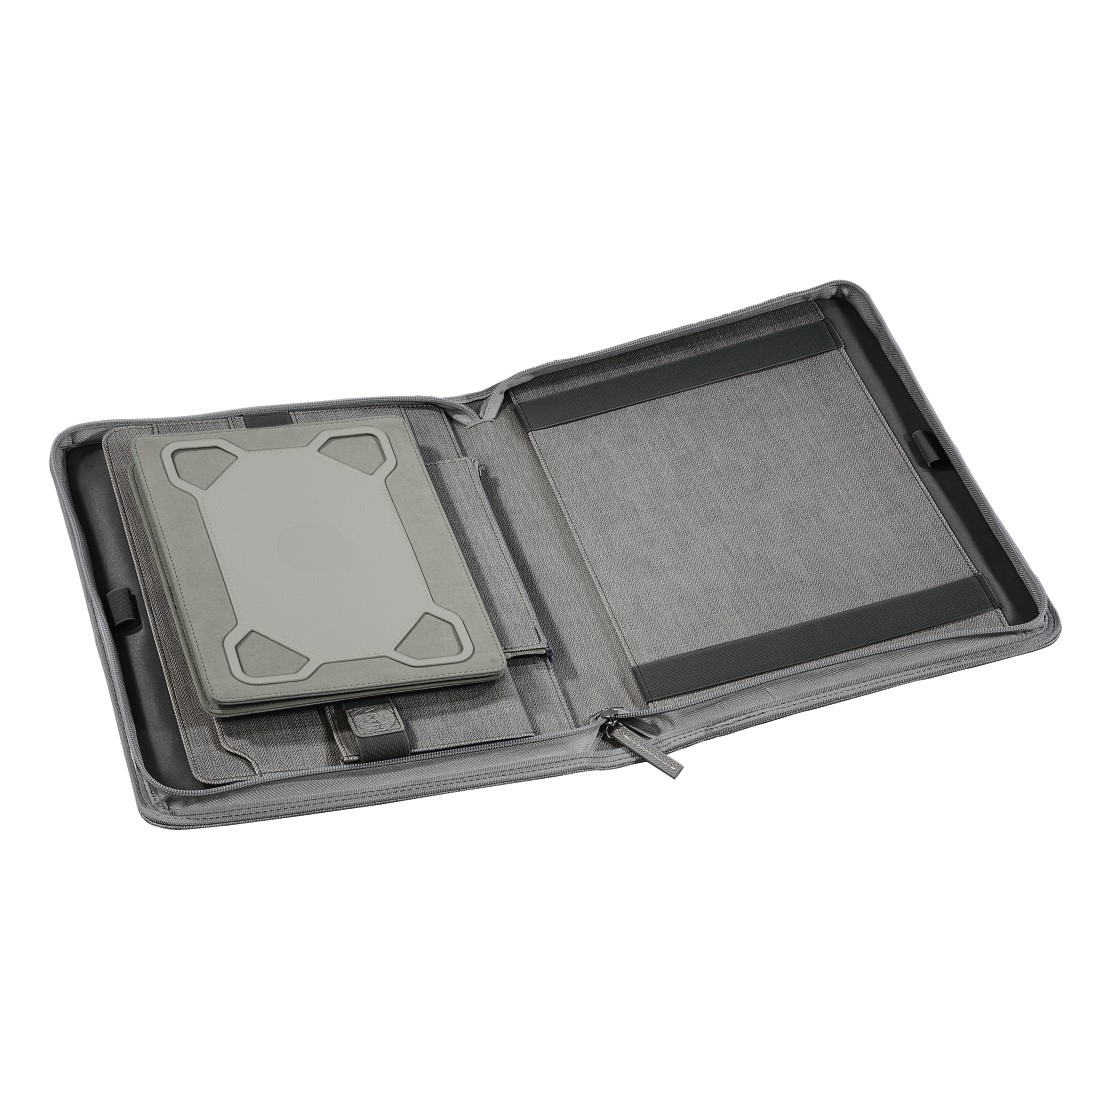 dex3 High-Res Detail 3 - Hama est. 1923, Hannover Tablet Organizer A4, light grey